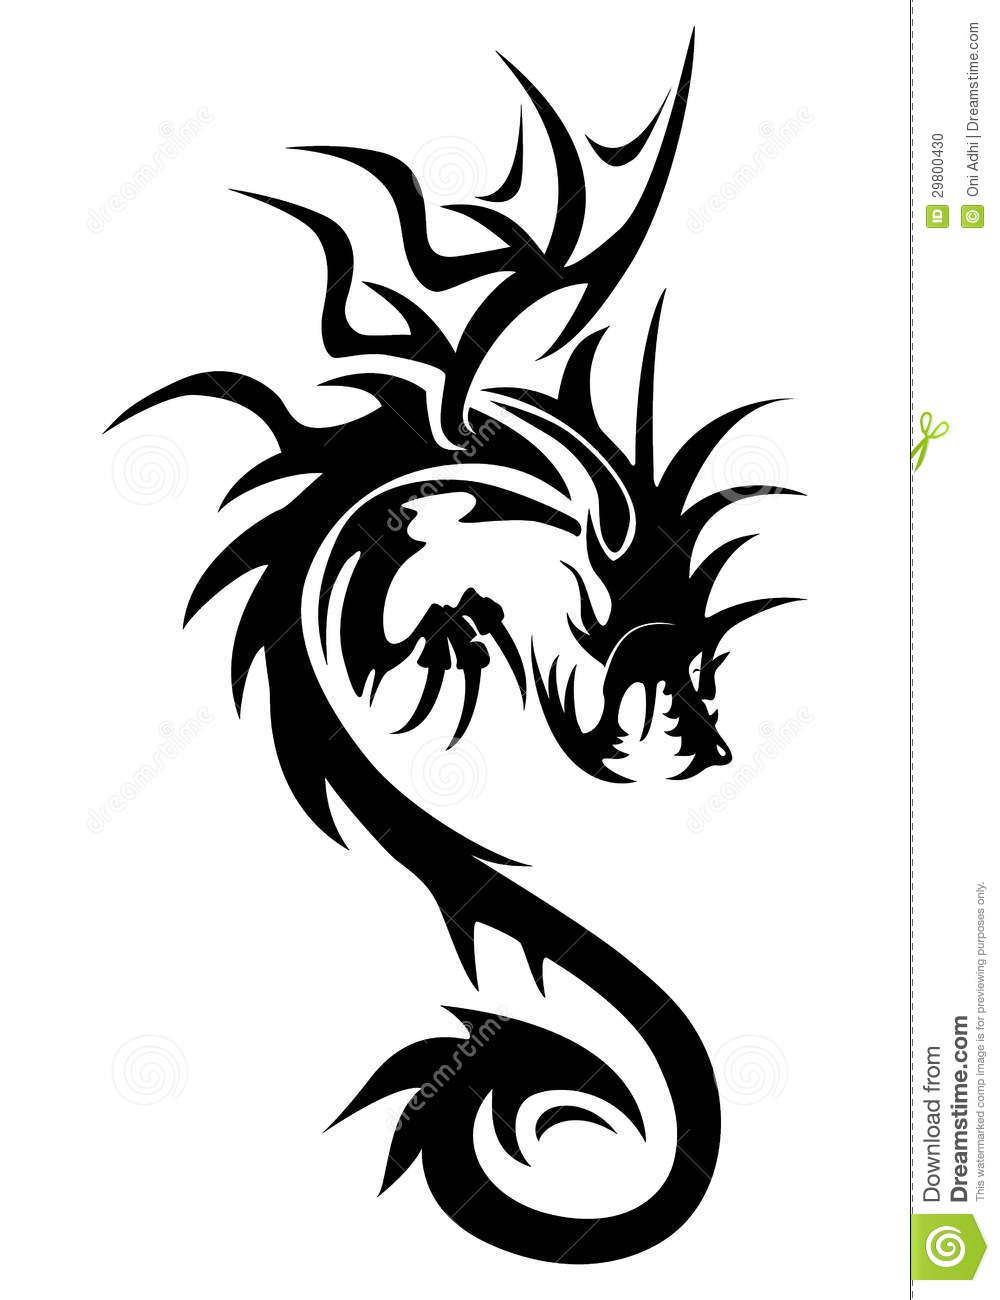 Dragon Symbol Stock Illustration Illustration Of Beast 29800430